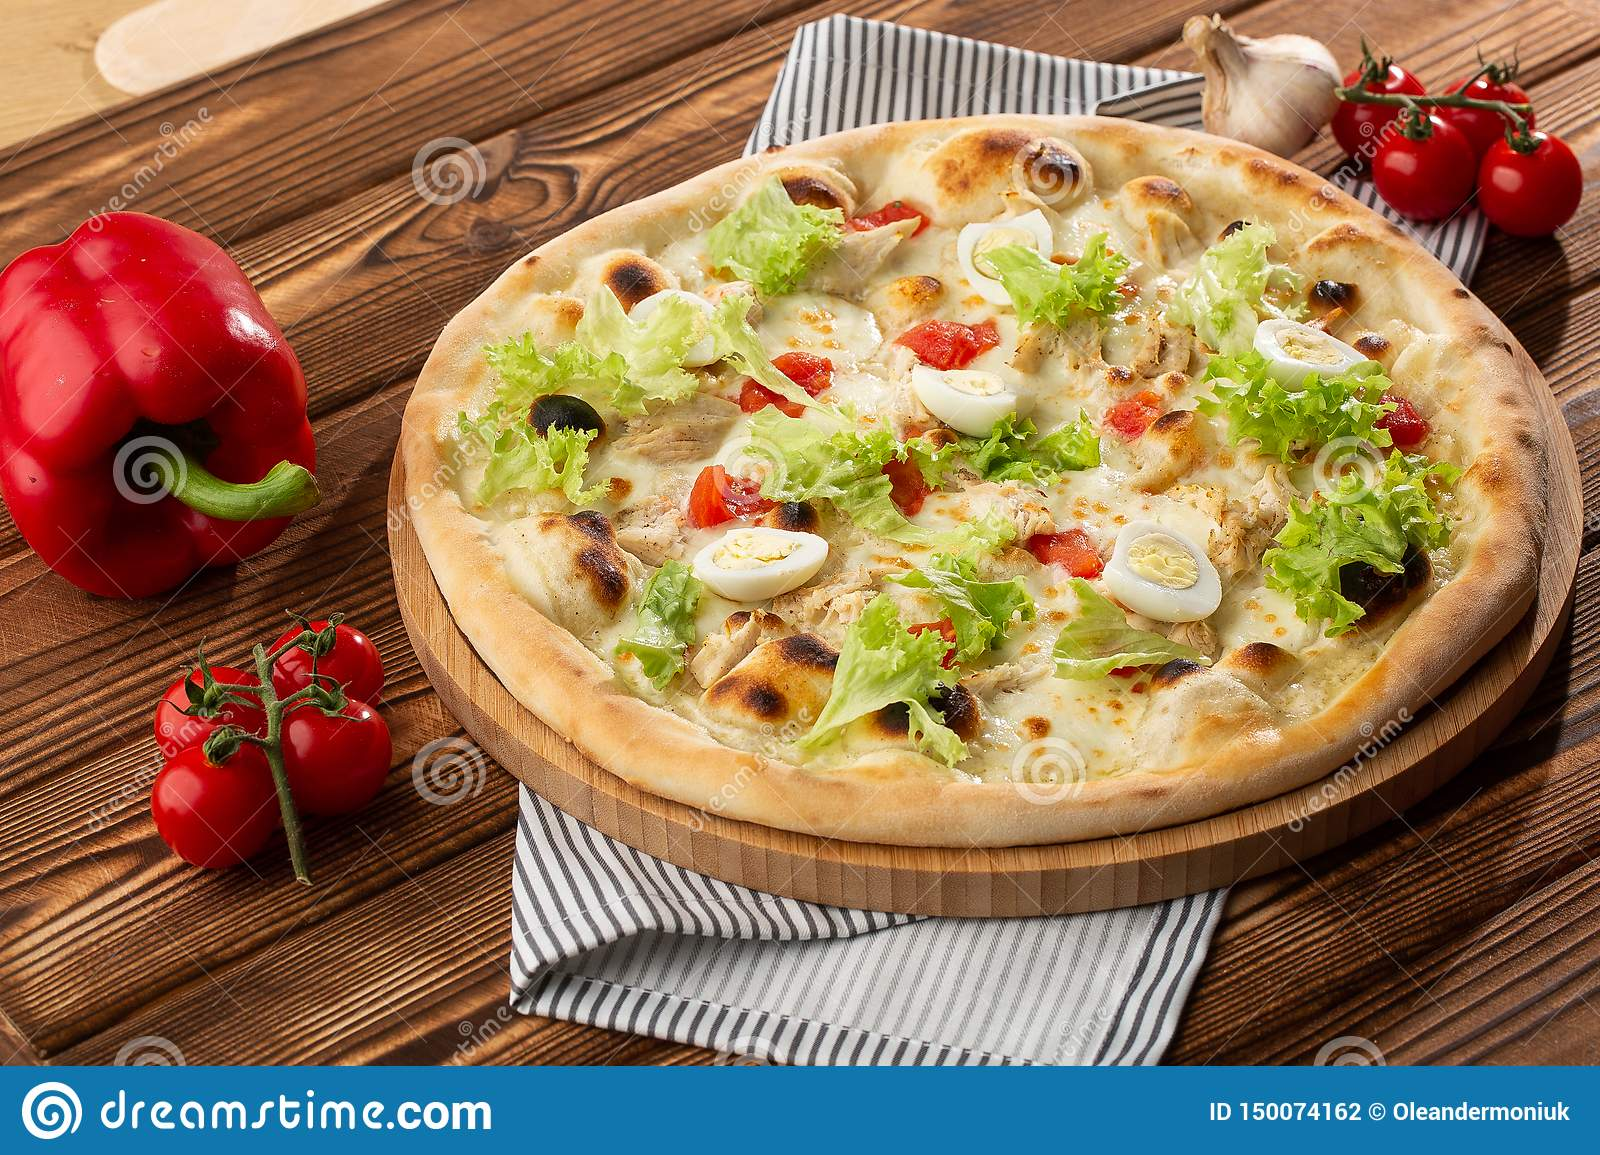 Delicious pizza Caesar style with white sauce, chicken, parmesan, egg, cherry tomatoes and fresh lettuce at wooden background.